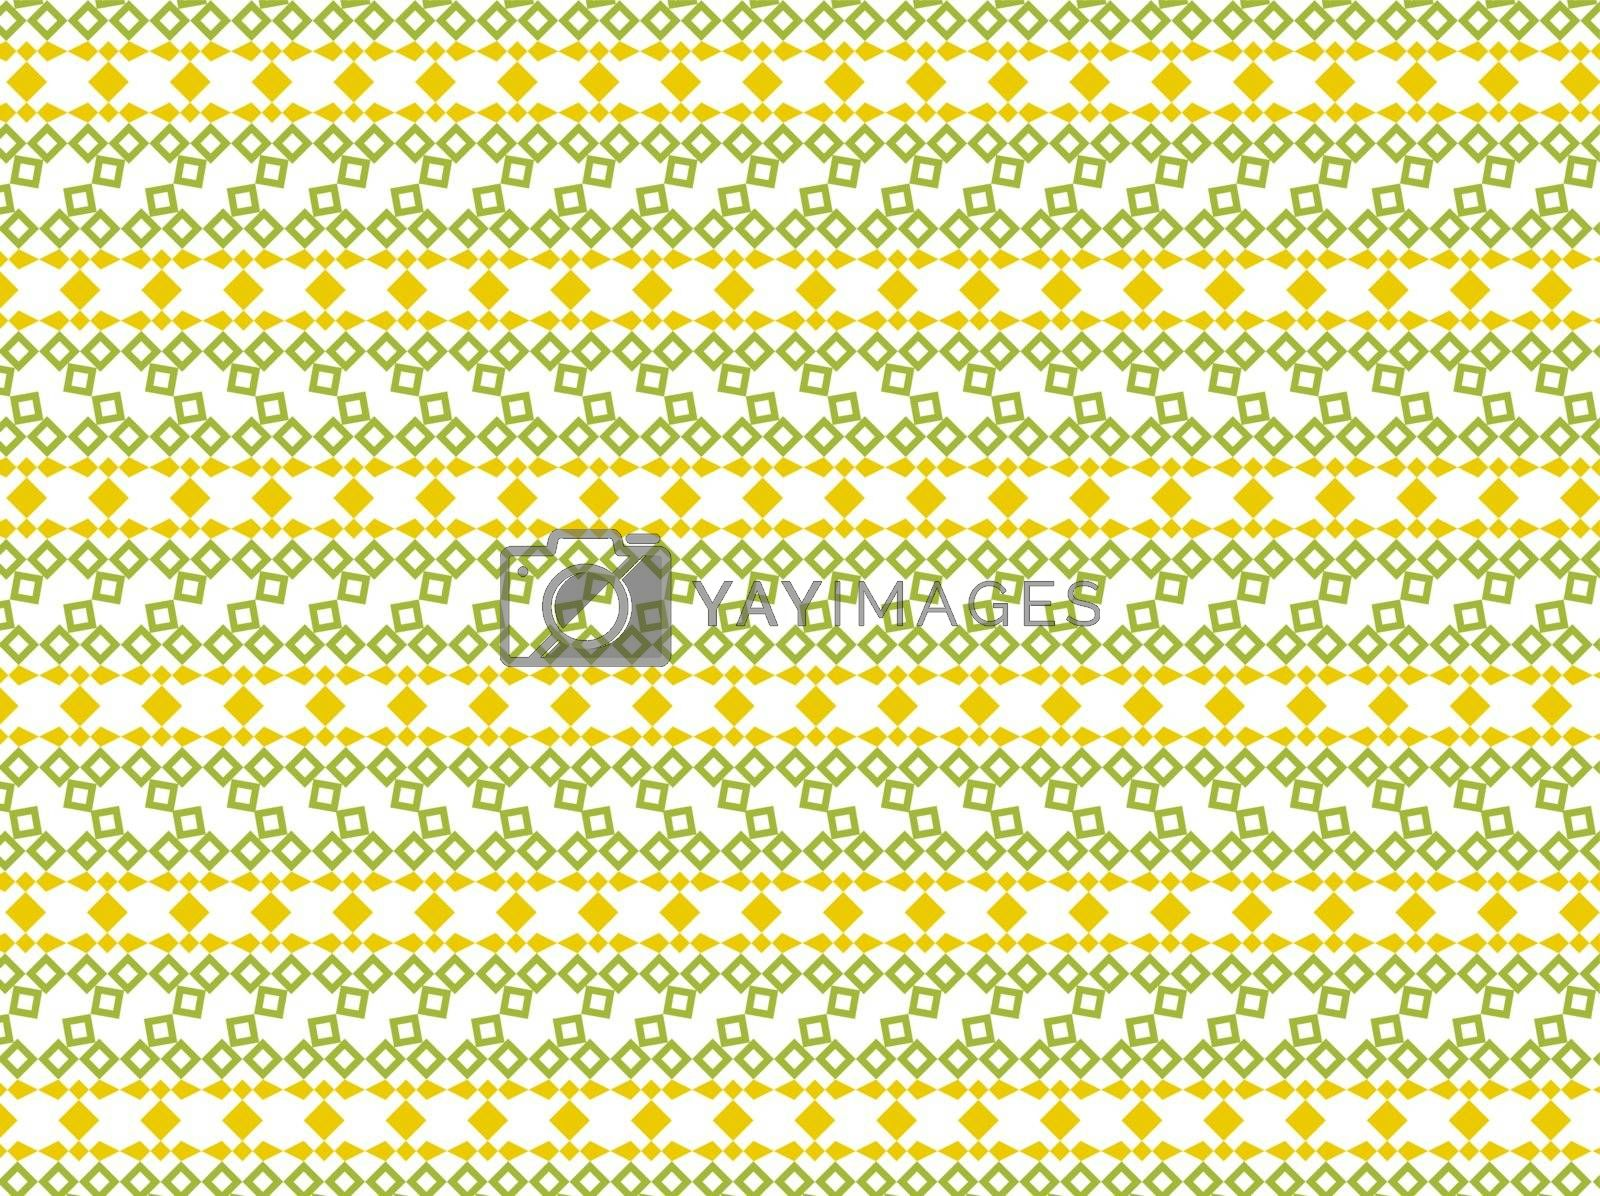 The abstract background made out of green and yellow elements